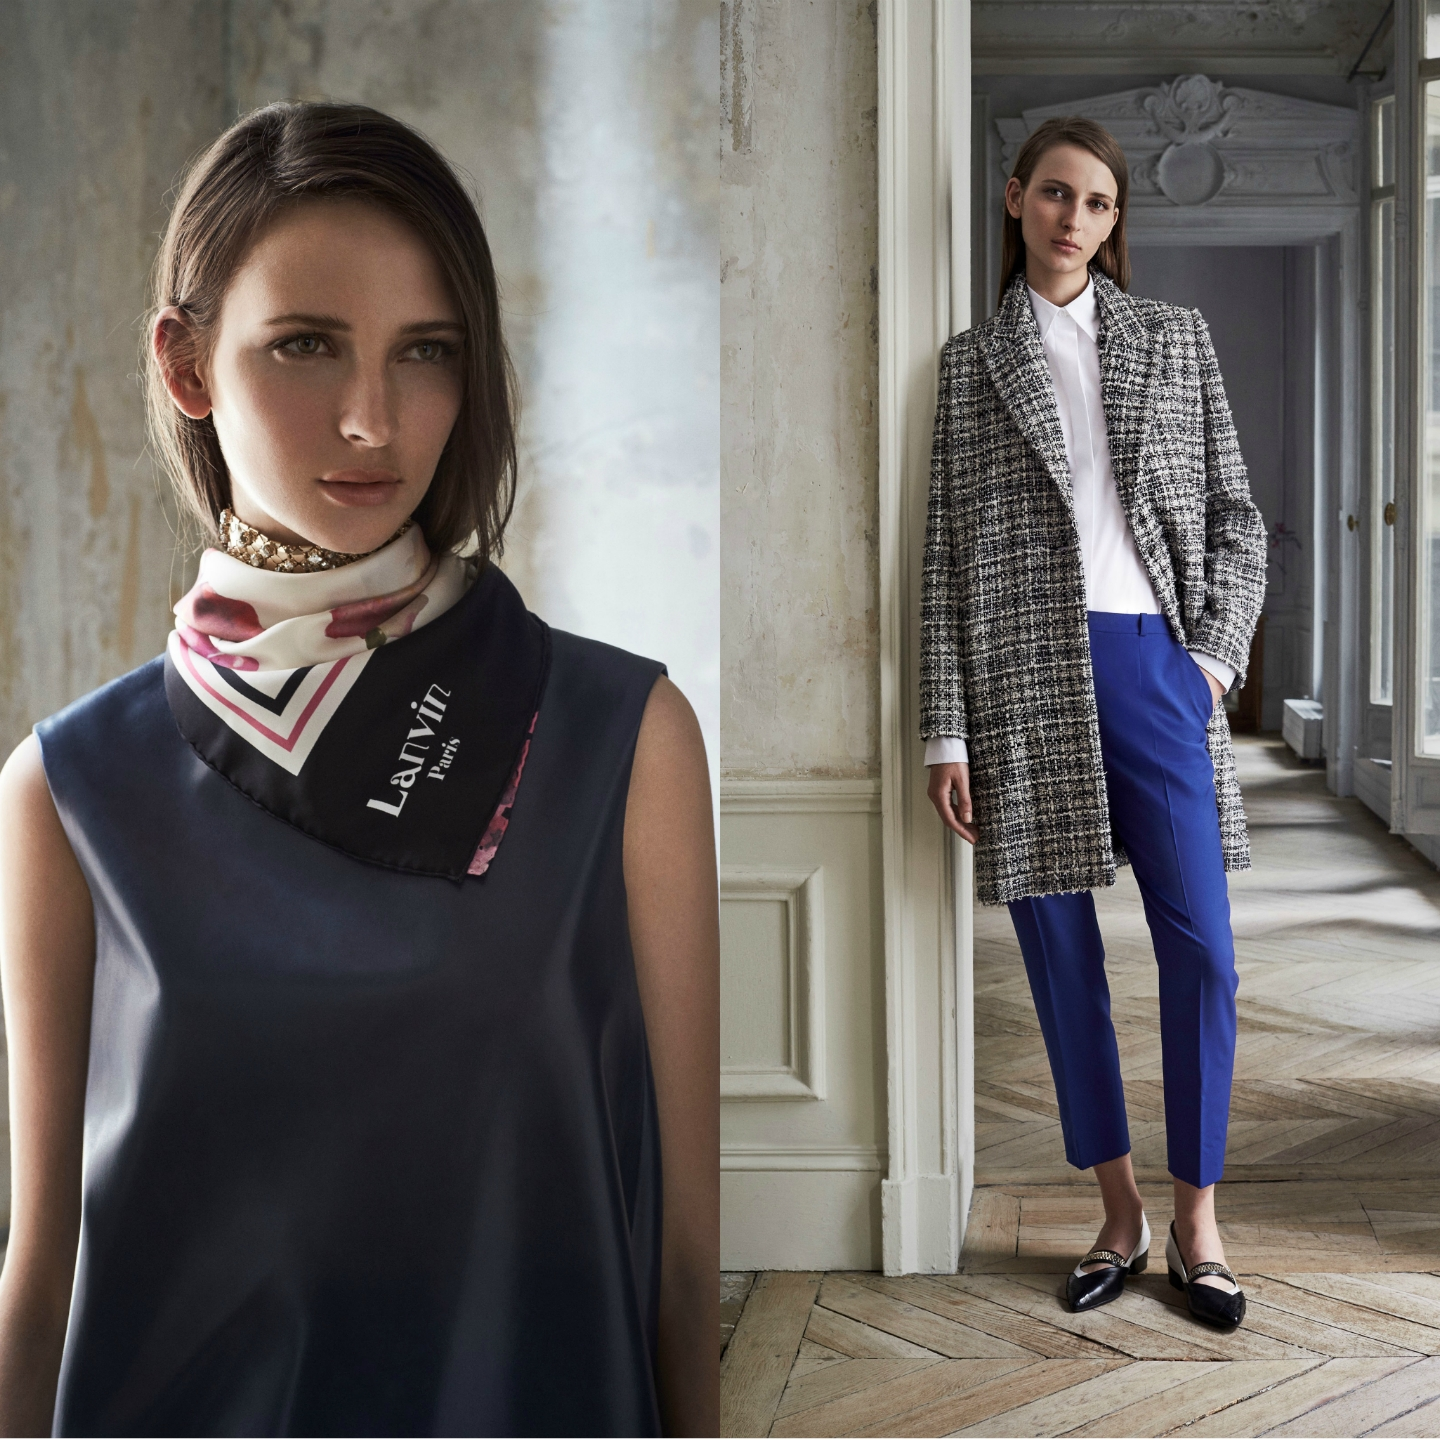 Eniwhere Fashion - Resort Collection - Lanvin